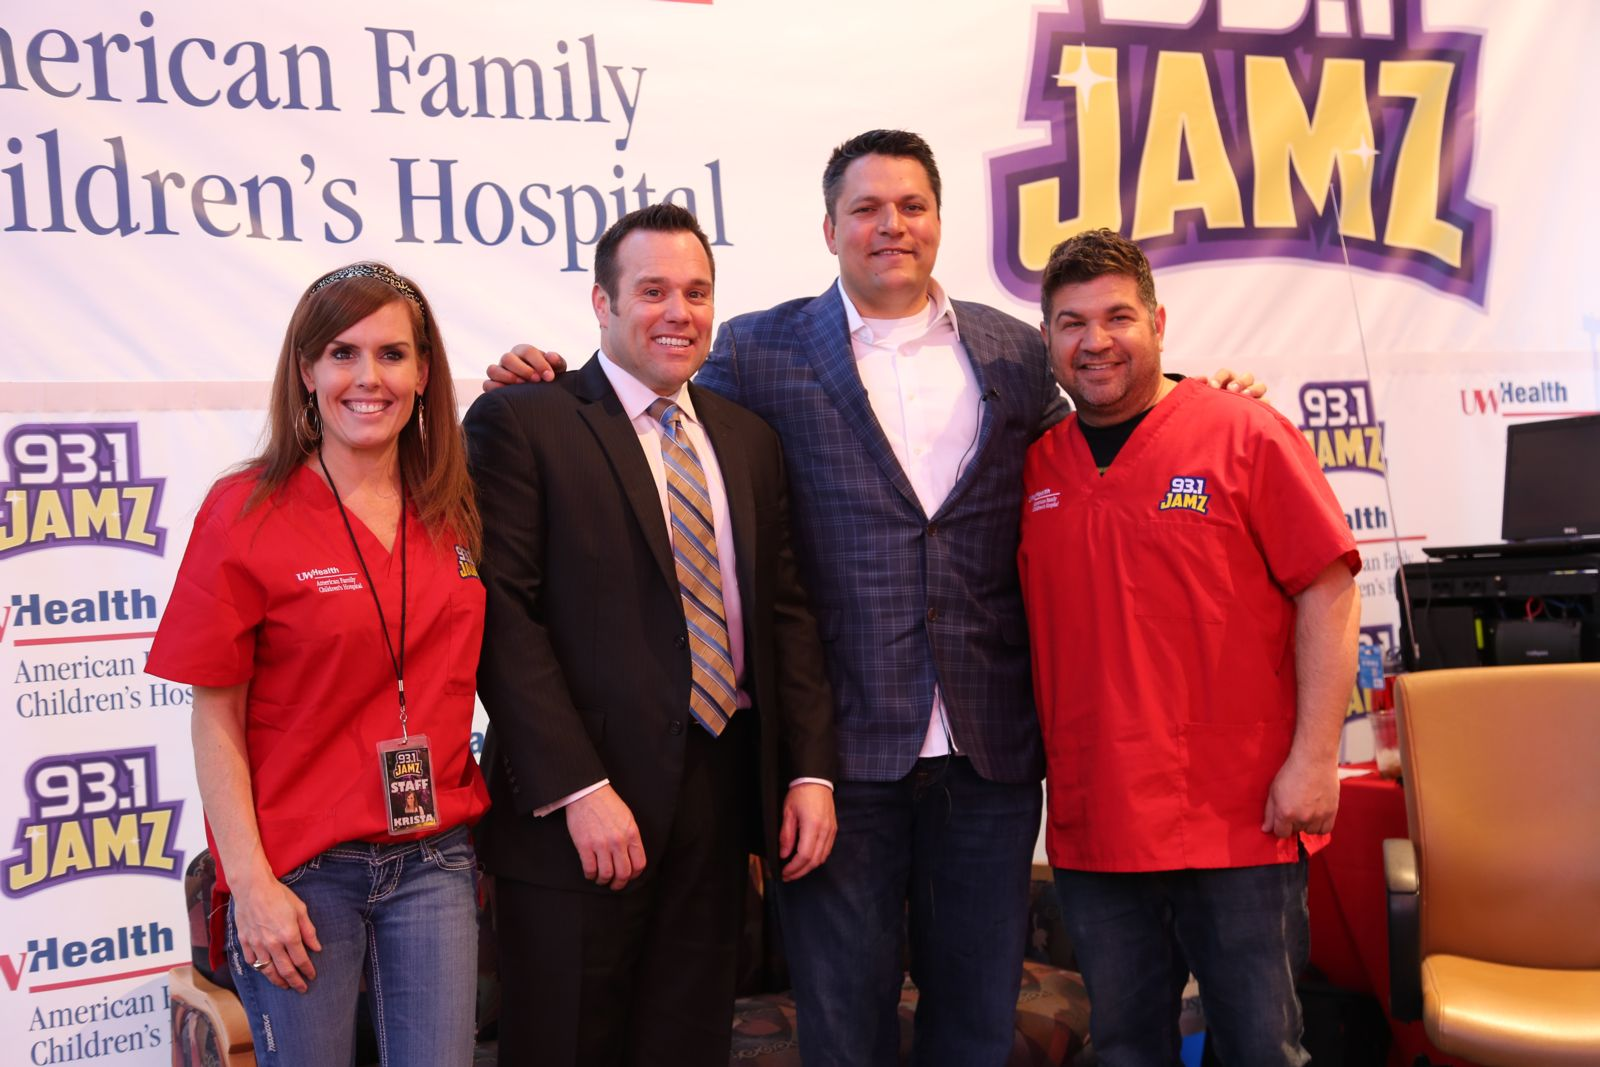 Hupy and Abraham attorneys at Radiothon Event